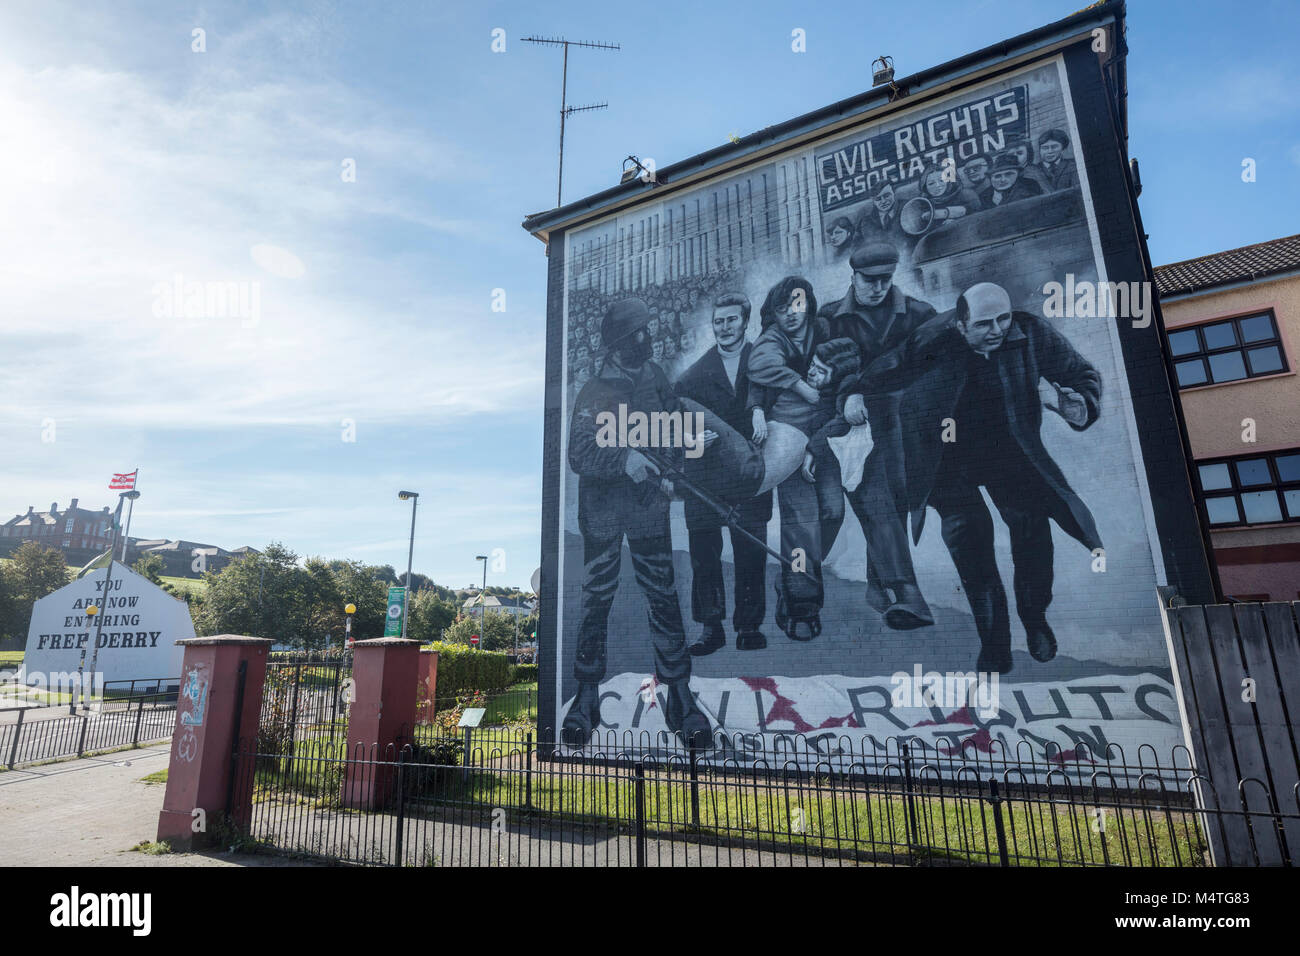 Republikanische Wandgemälde zum Gedenken an Bloody Sunday, Bogside, Derry City, County Derry, Nordirland. Stockbild